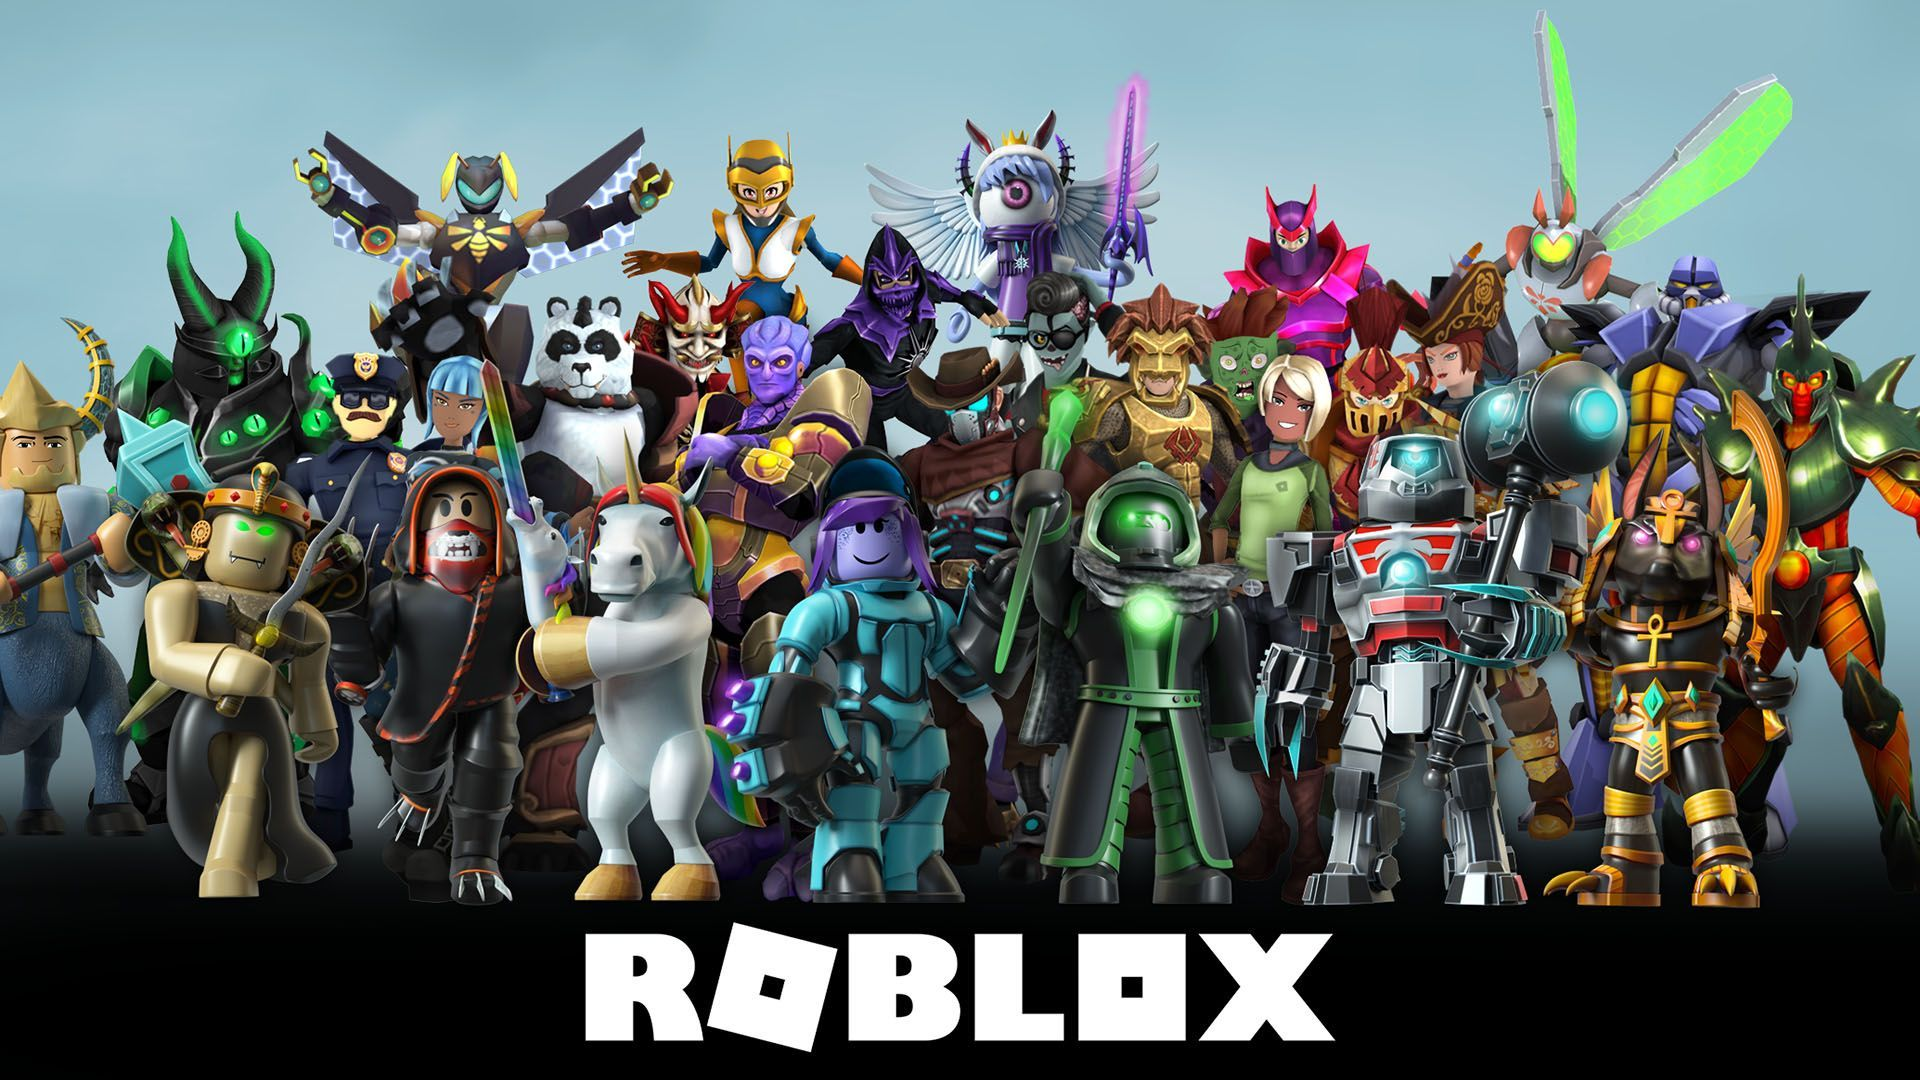 roblox pictures images